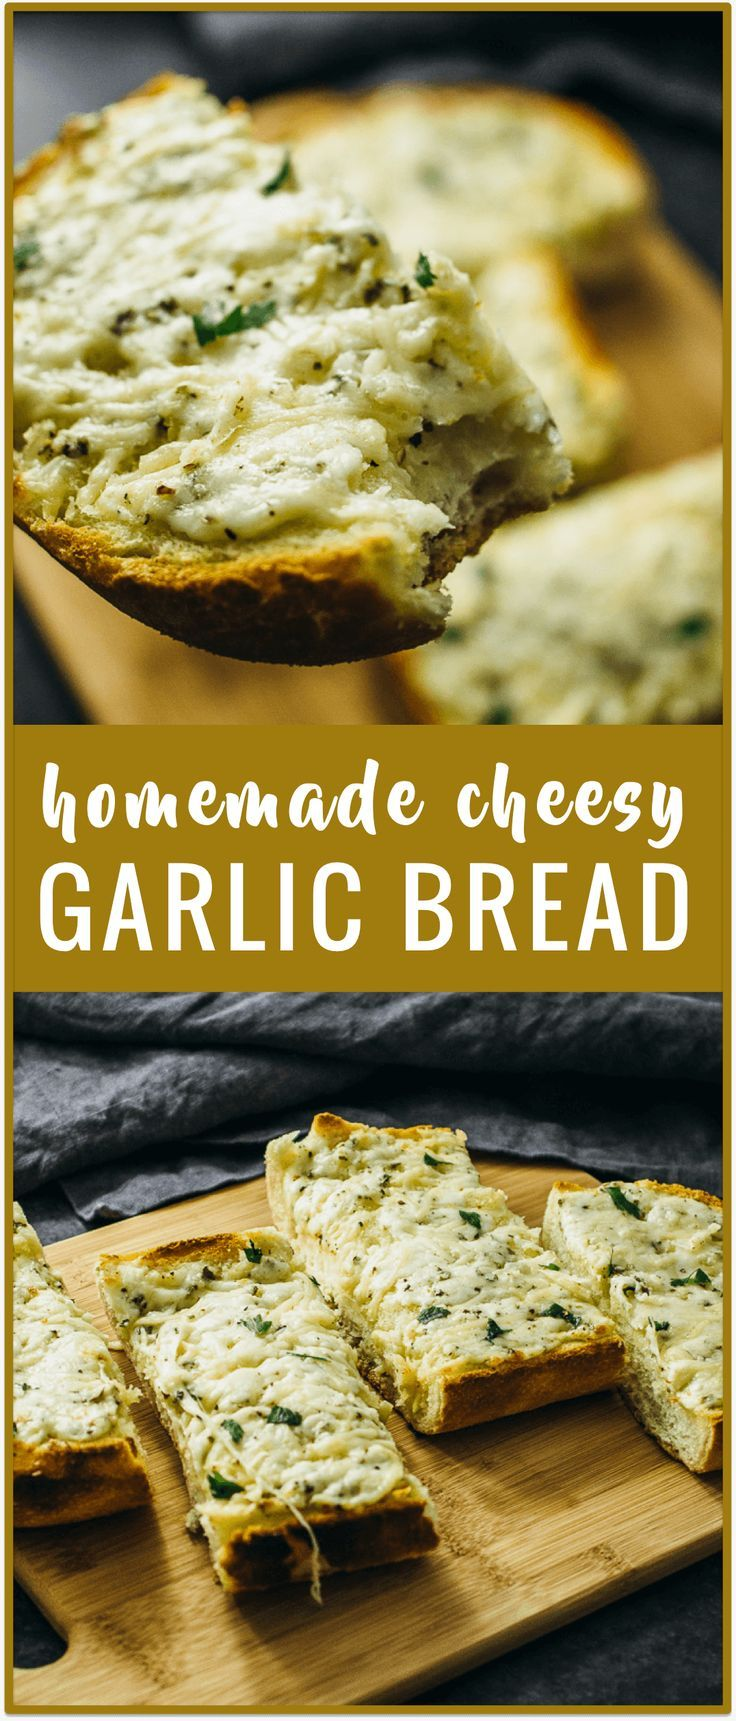 Cheesy oven-baked garlic bread - Make your own garlic bread at home with this simple recipe. All you need is a loaf of Italian bread, garlic cloves, butter, and lots of cheese.